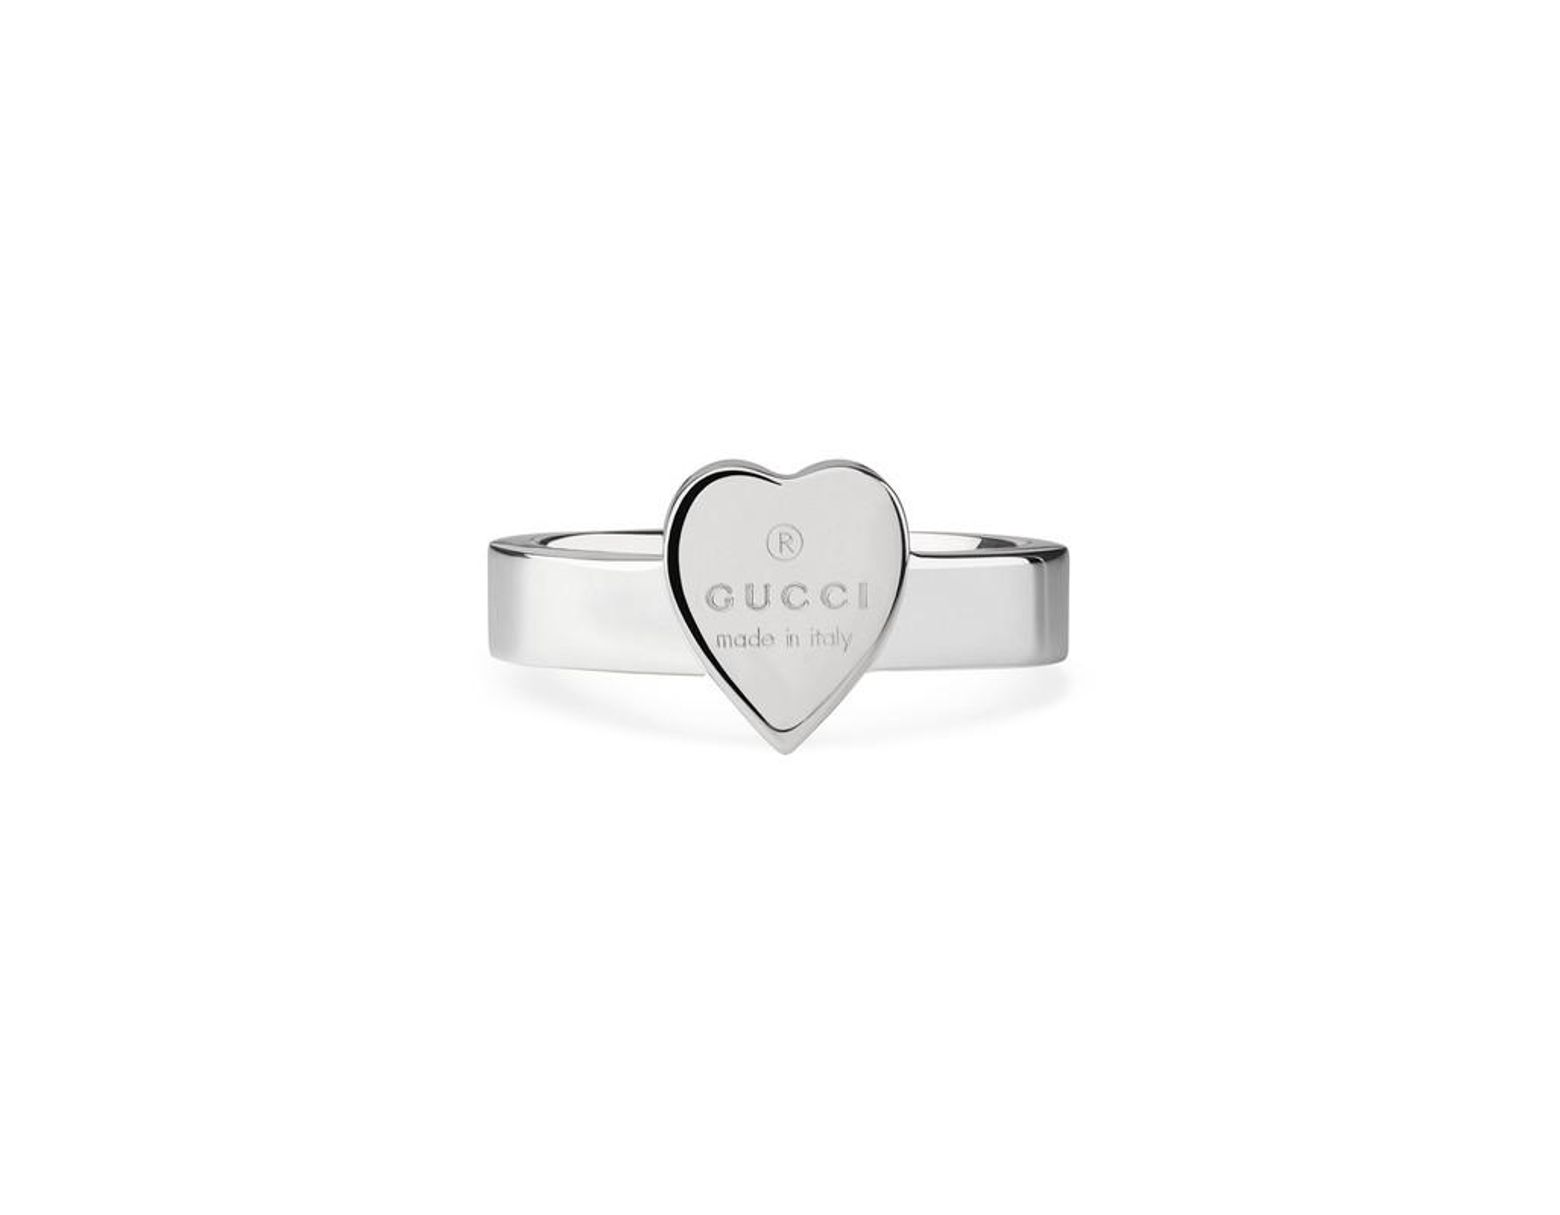 d3d4d249279790 Gucci Heart Ring With Trademark in Metallic - Save 5% - Lyst